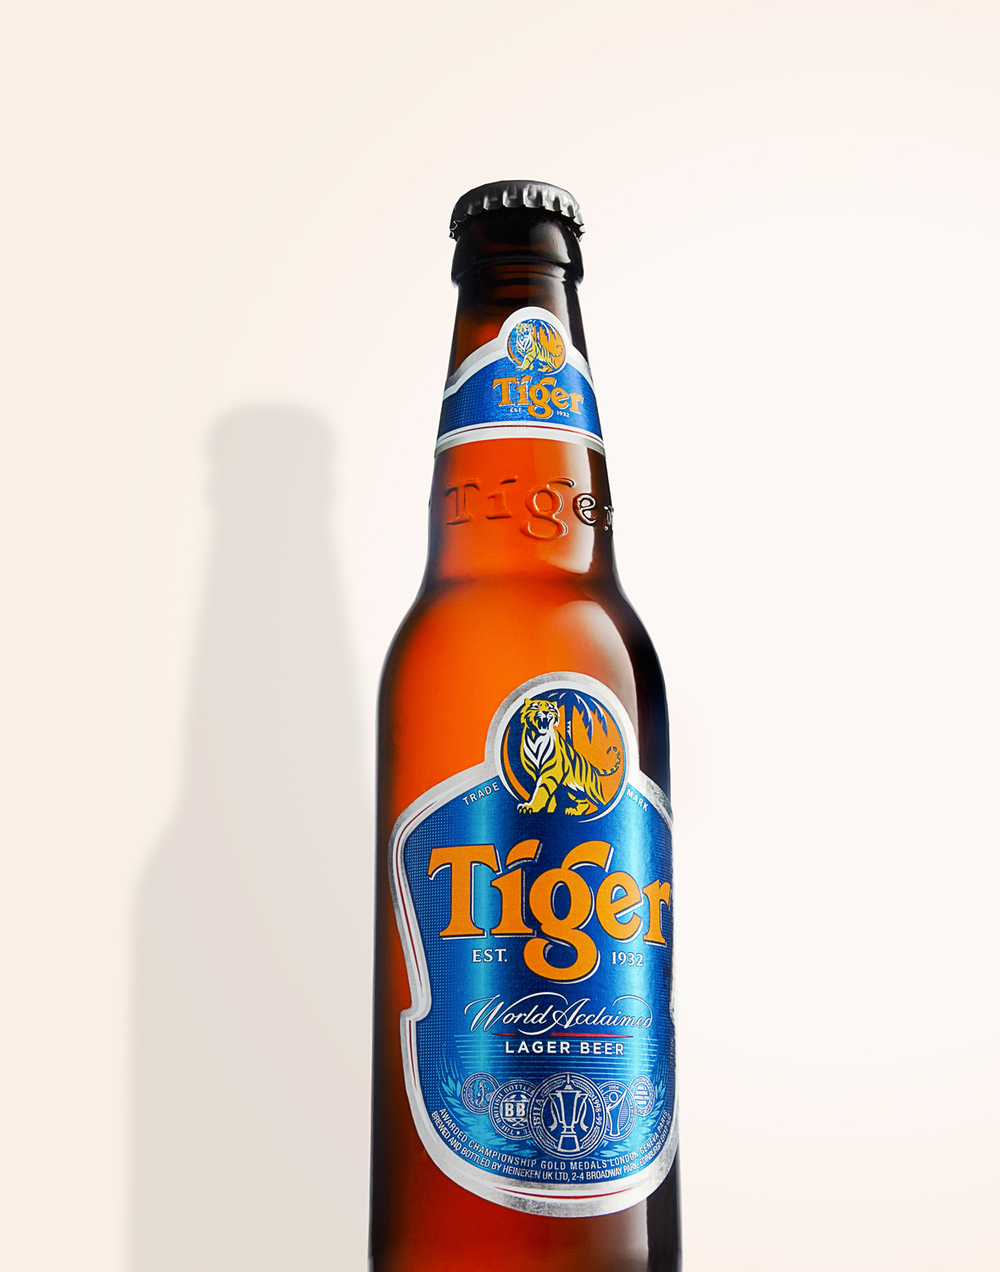 Tiger-Beer-bottle.jpg